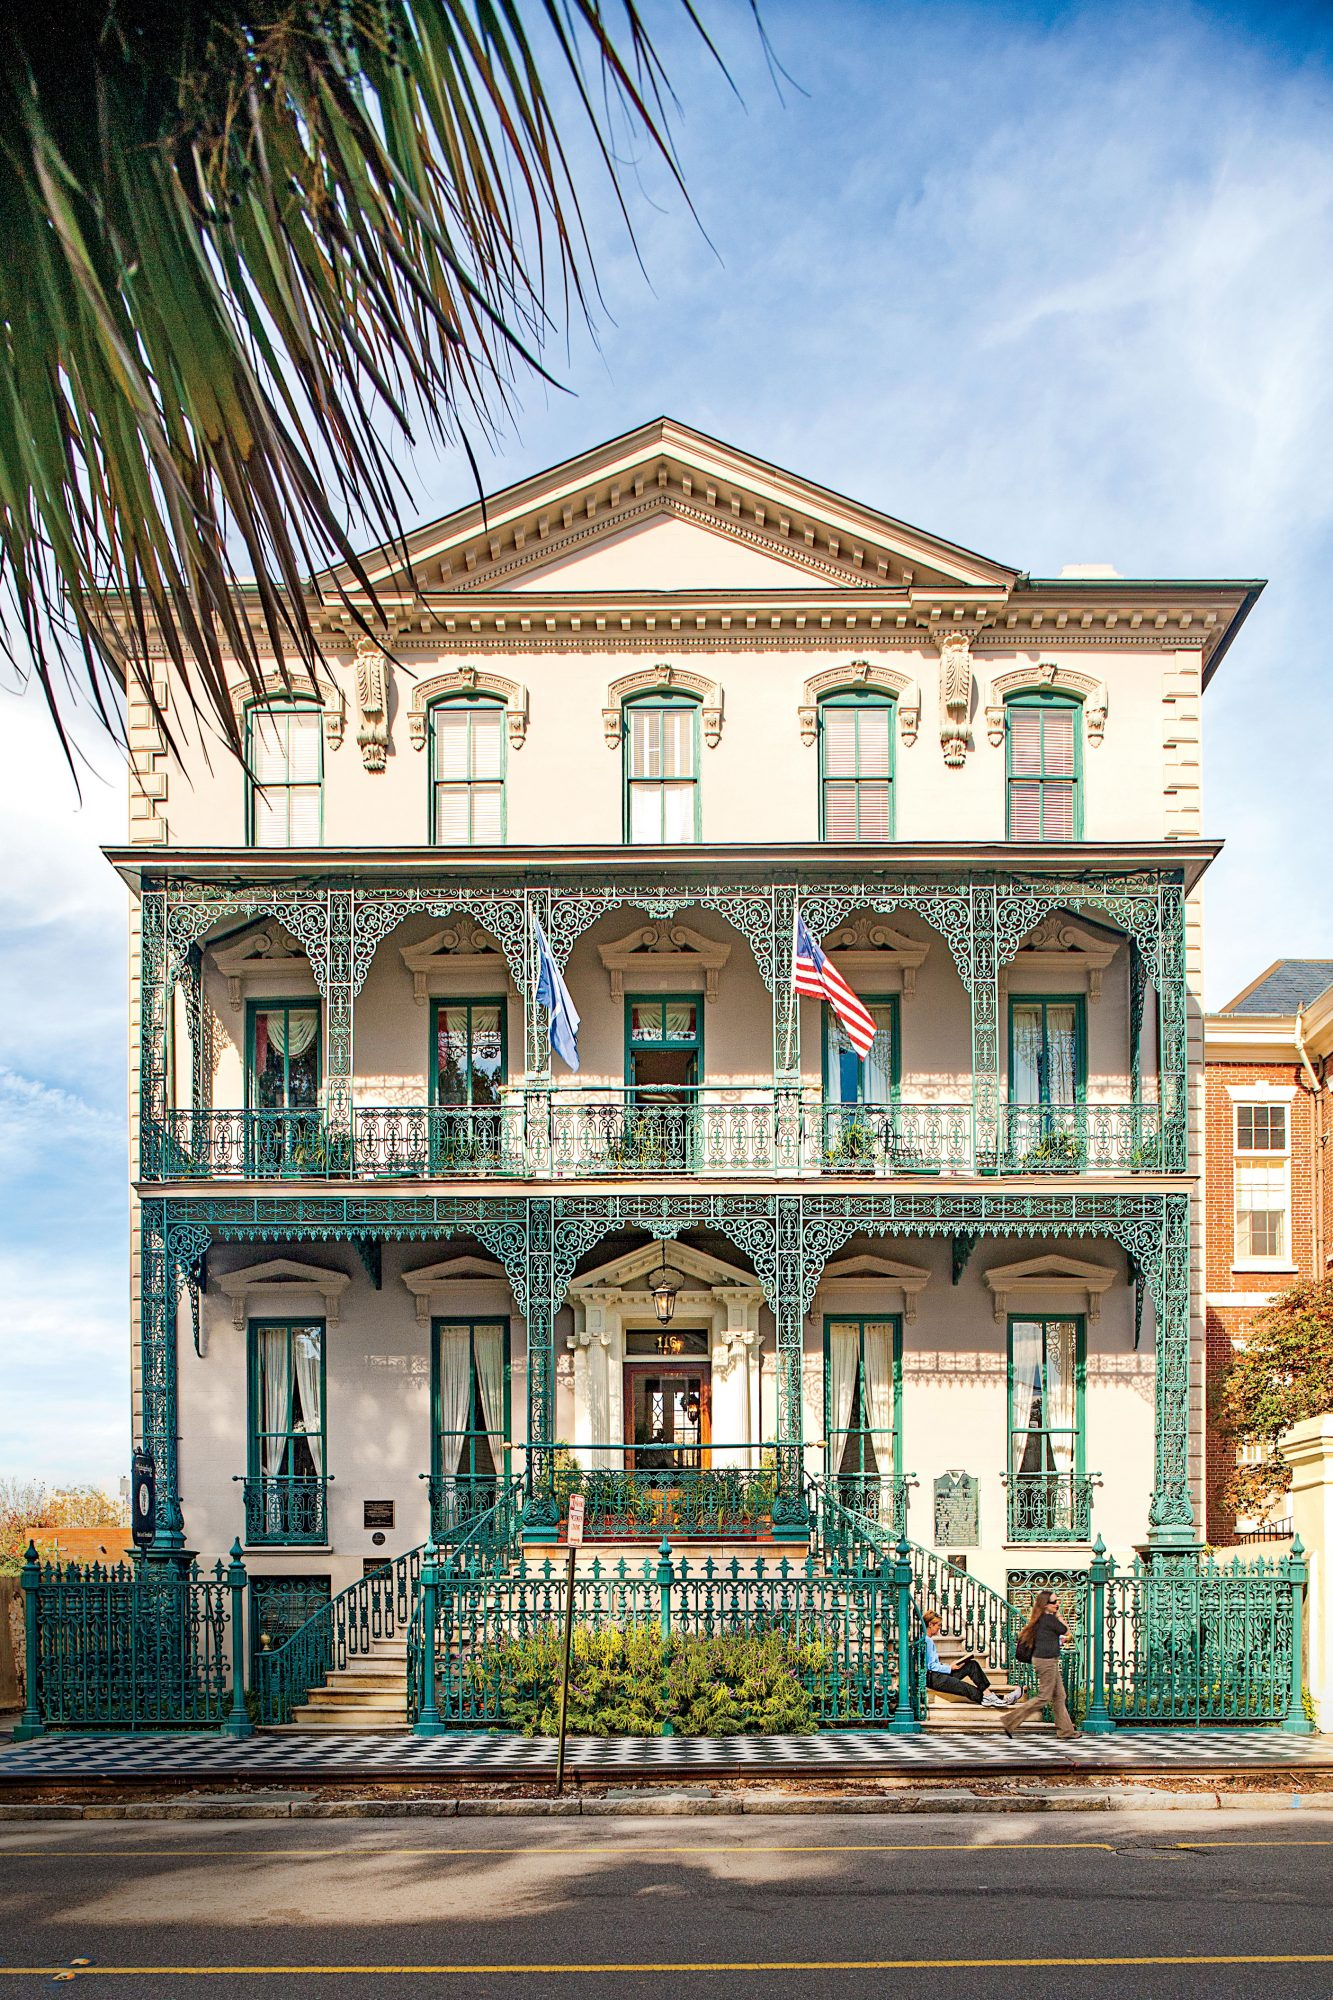 8. John Rutledge House Inn